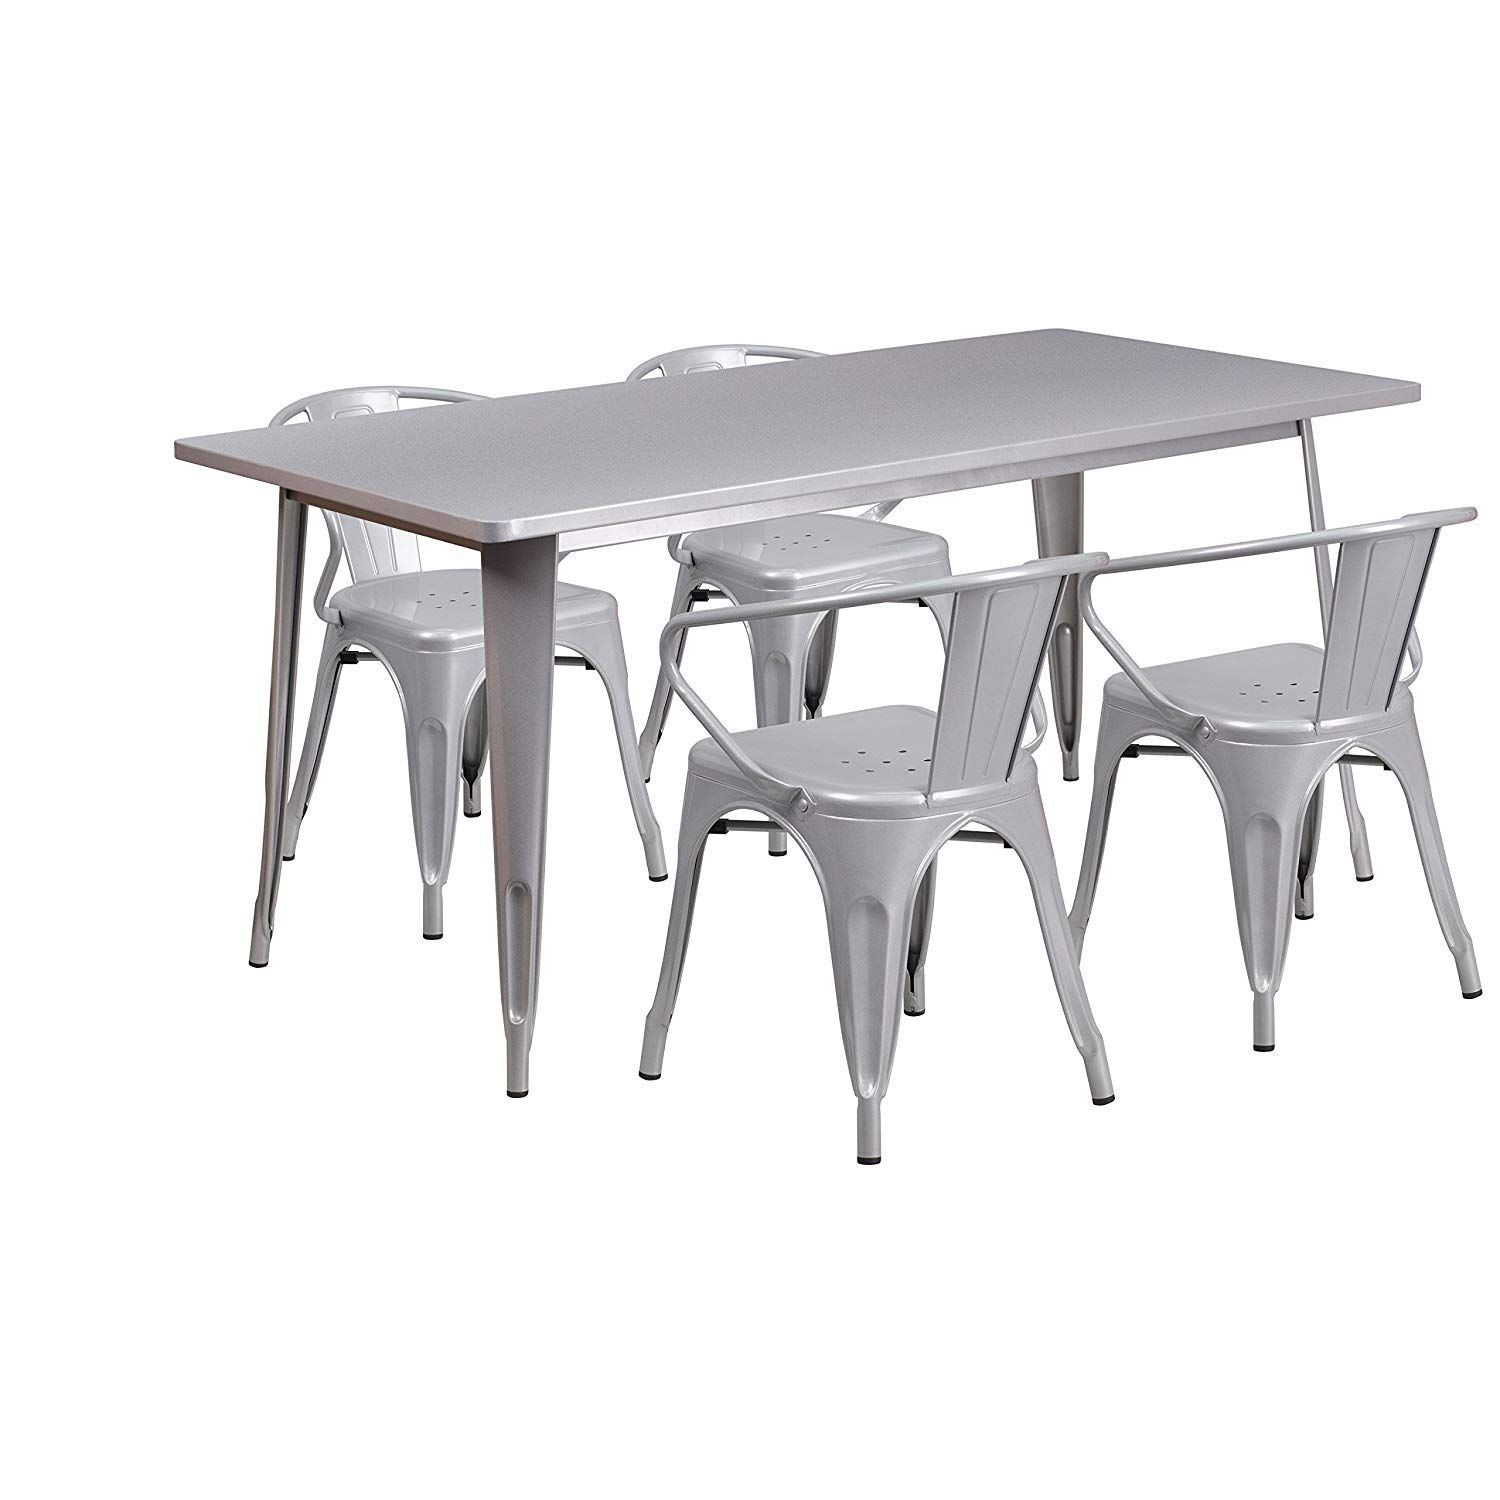 Flash Furniture 31 5 X 63 Rectangular Silver Metal Indoor Outdoor Table Set With 4 Arm Chairs Outdoor Table Settings Outdoor Tables Flash Furniture